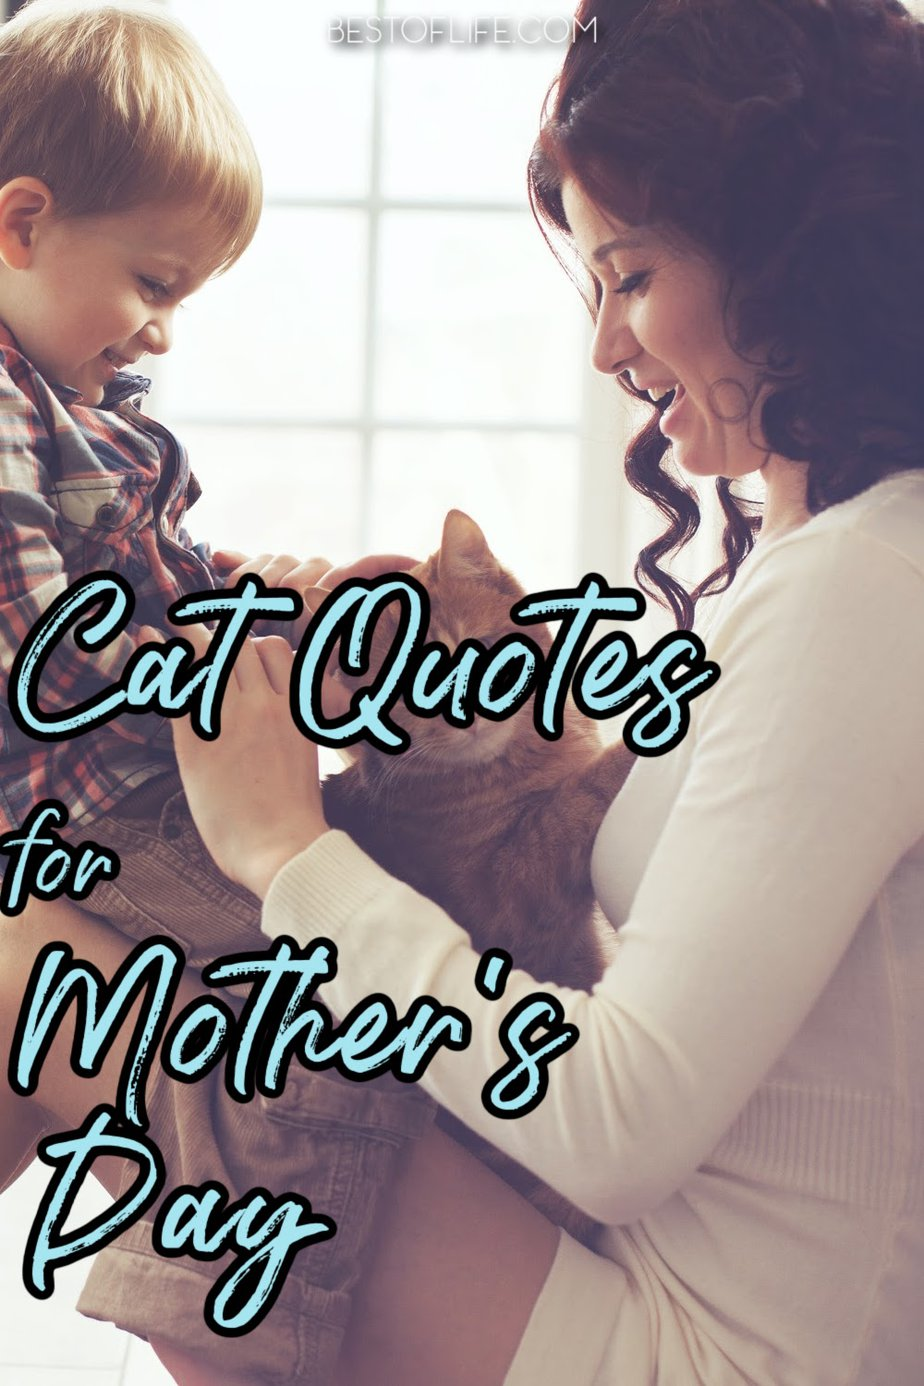 Cat quotes for Mother's Day can be used in all sorts of ways with the most important one being to express your love and appreciation. Mother's Day Quotes from Daughter | Mother's Day Quotes for Everyone | Funny Quotes with Cats | Mother's Day Quotes from Cats | Quotes for Cat People | Cat People Quotes #quotes #cats via @thebestoflife